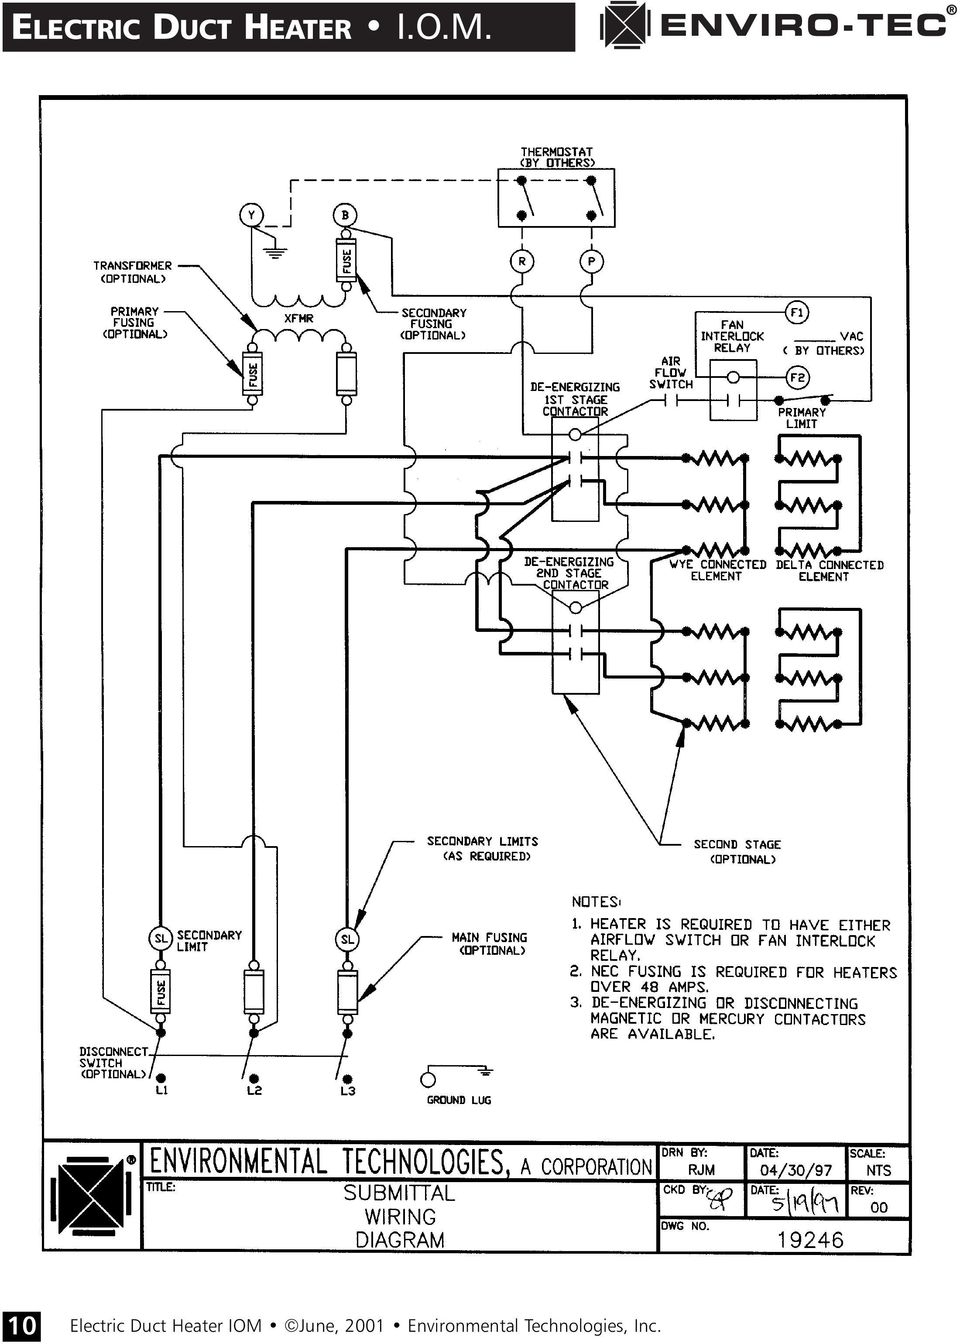 medium resolution of electric duct heater wiring diagram